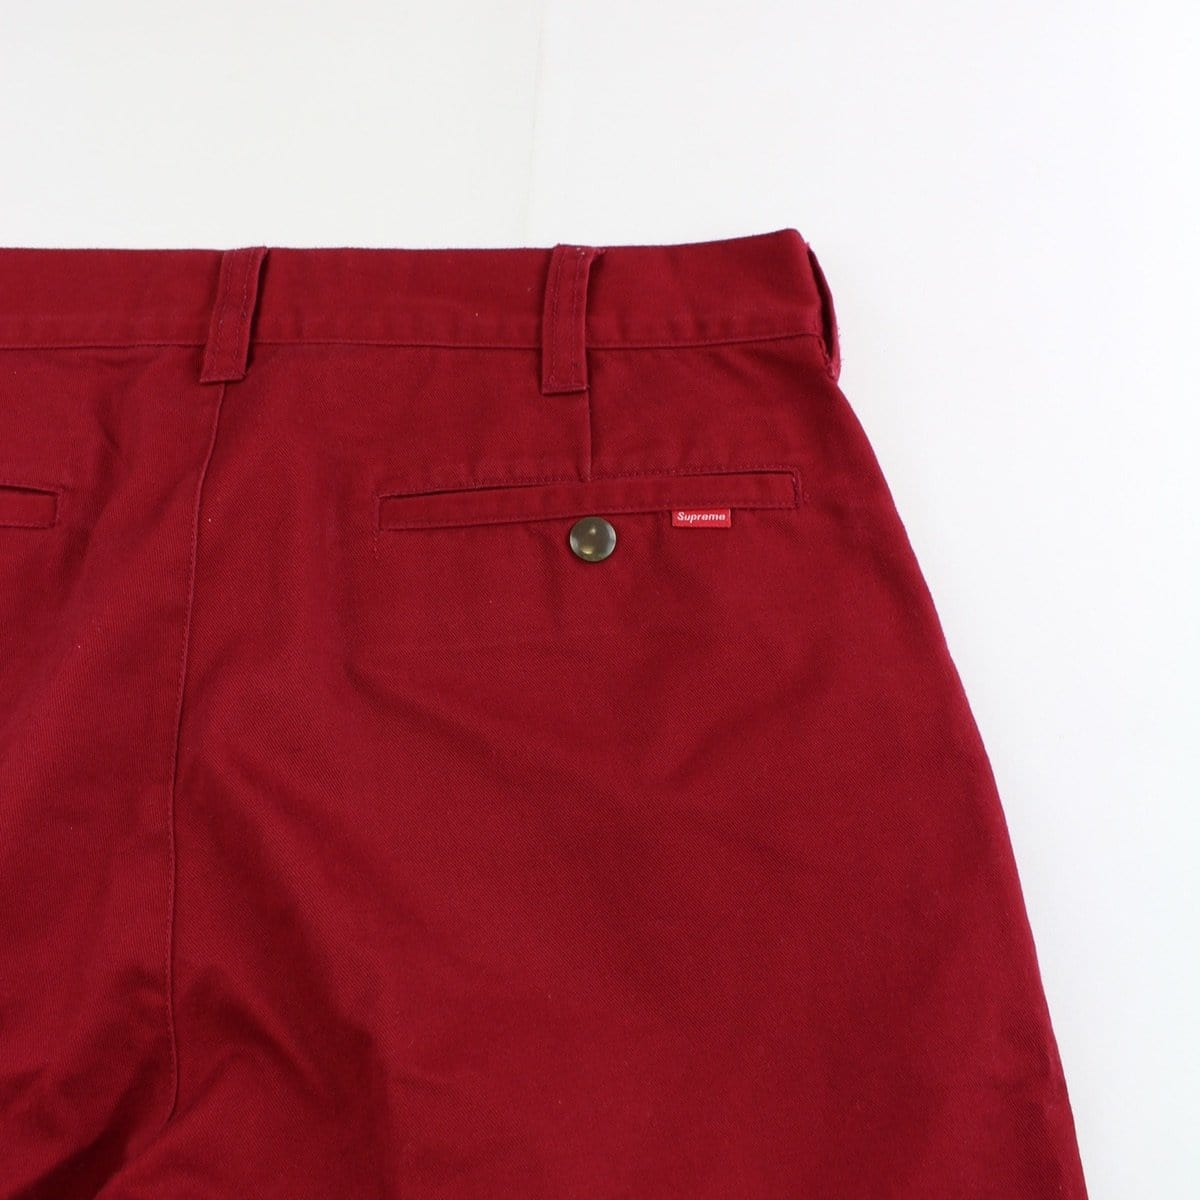 supreme dragon work pants red - SaruGeneral